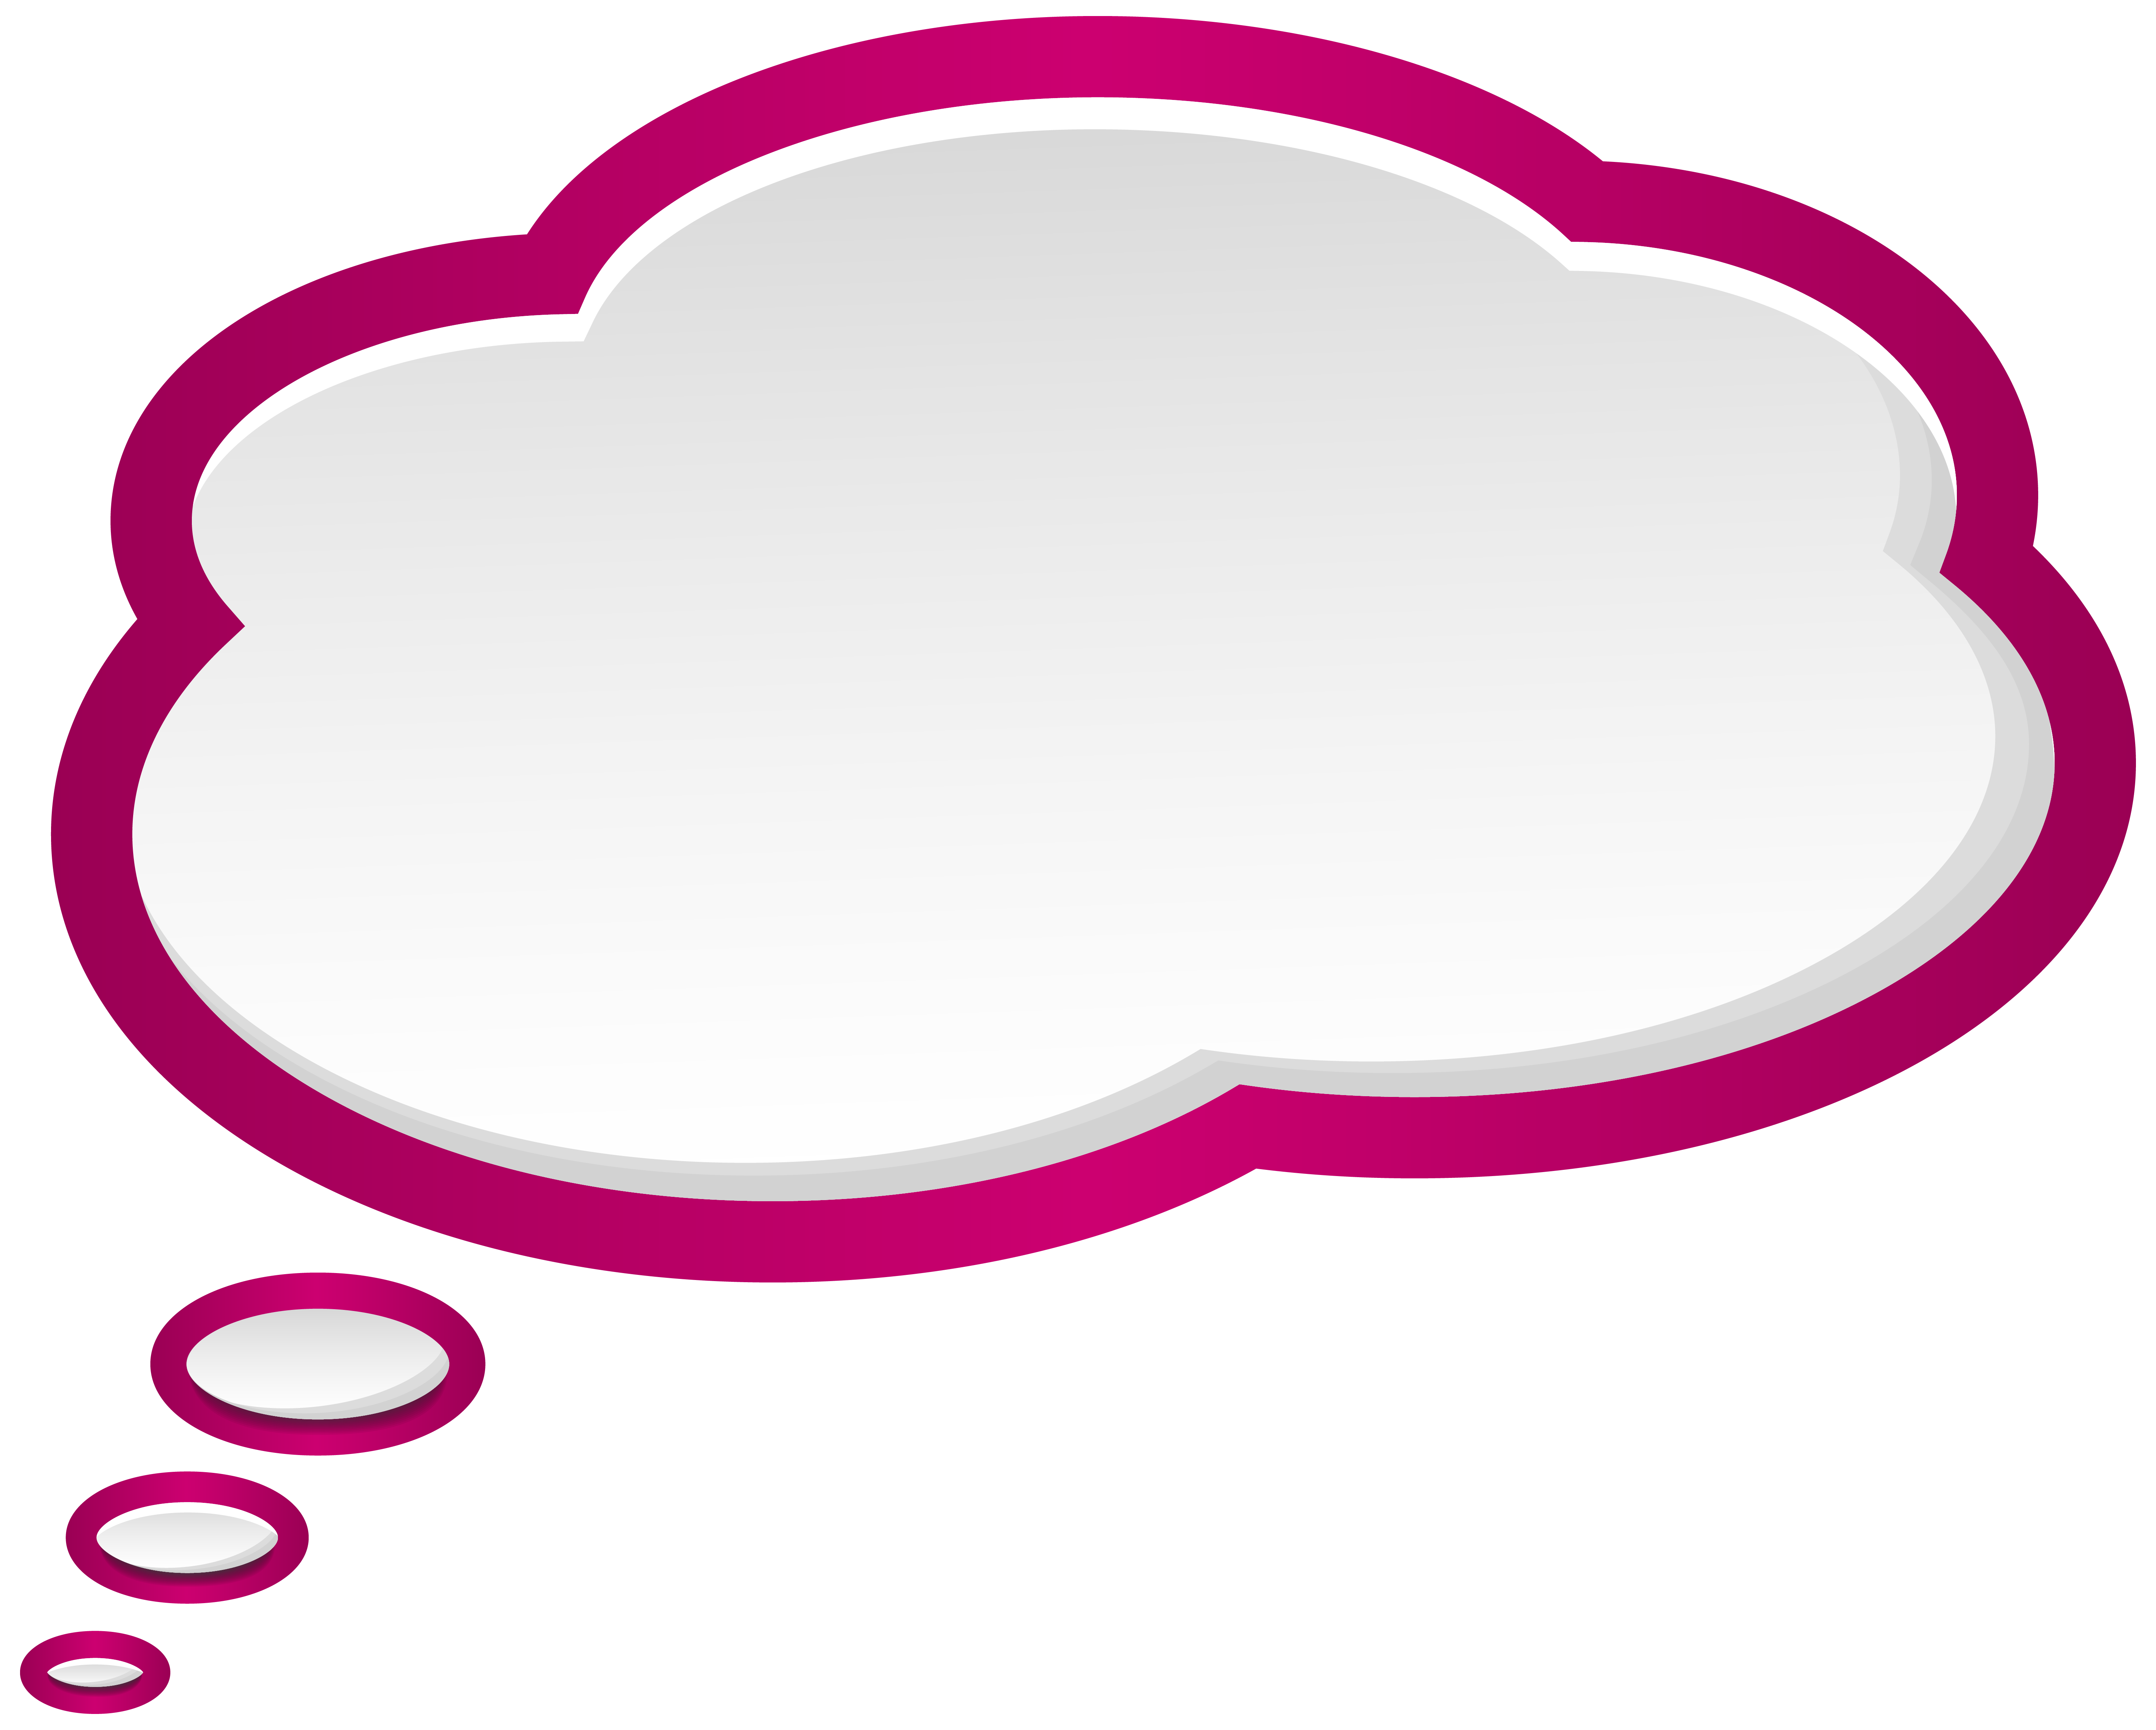 clipart freeuse download Bubble pink white png. Speech clipart